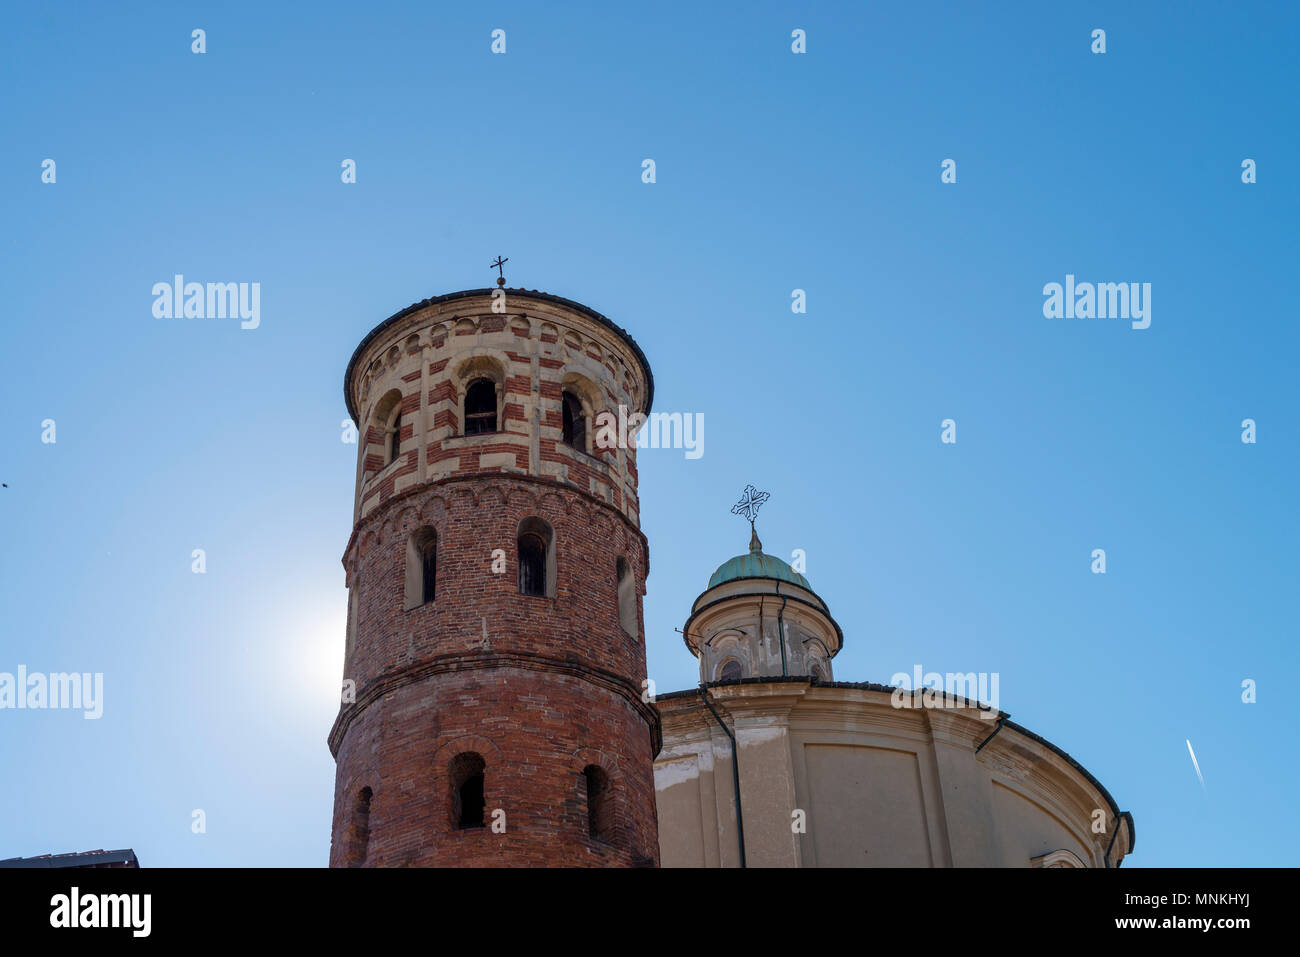 Red Tower in Asti, Italy - Stock Image